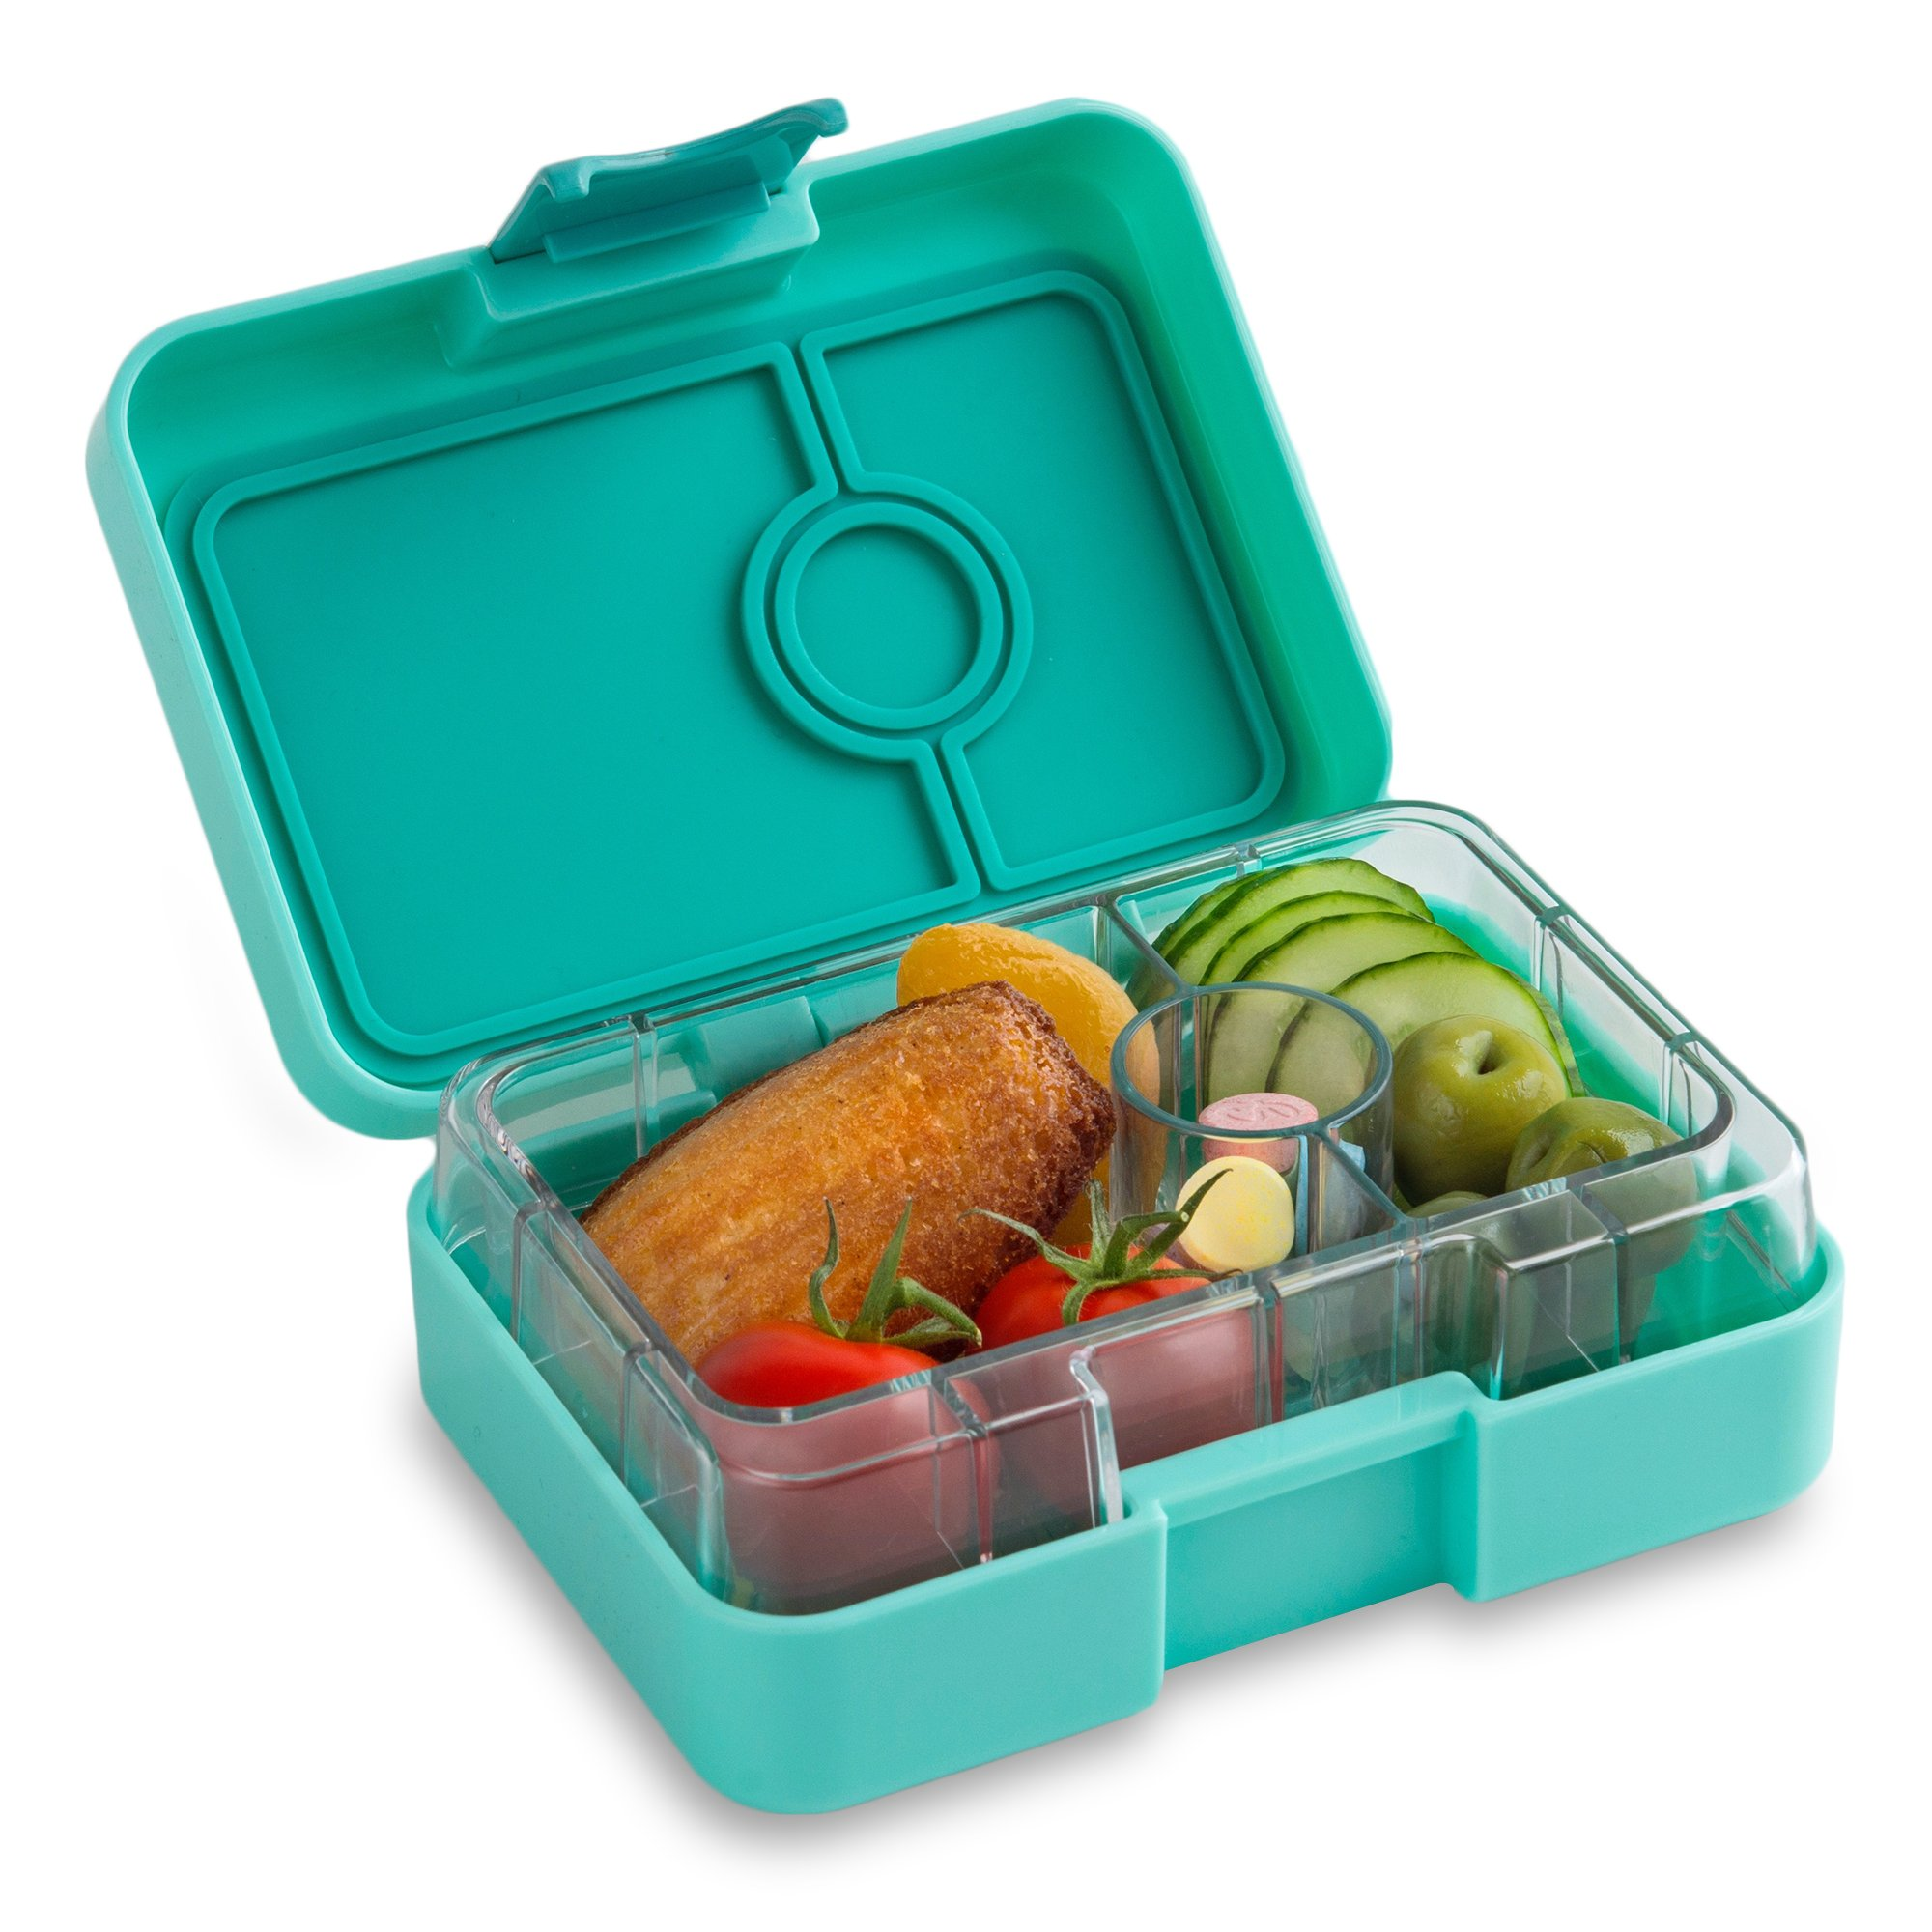 YUMBOX MiniSnack Leakproof Snack Box (Surf Green), mini, minisnack, leakproof, reusable meals, healthy eating, healthy snacks, kids lunch daycare, snack box, bento, bento box, divided container port by Yumbox